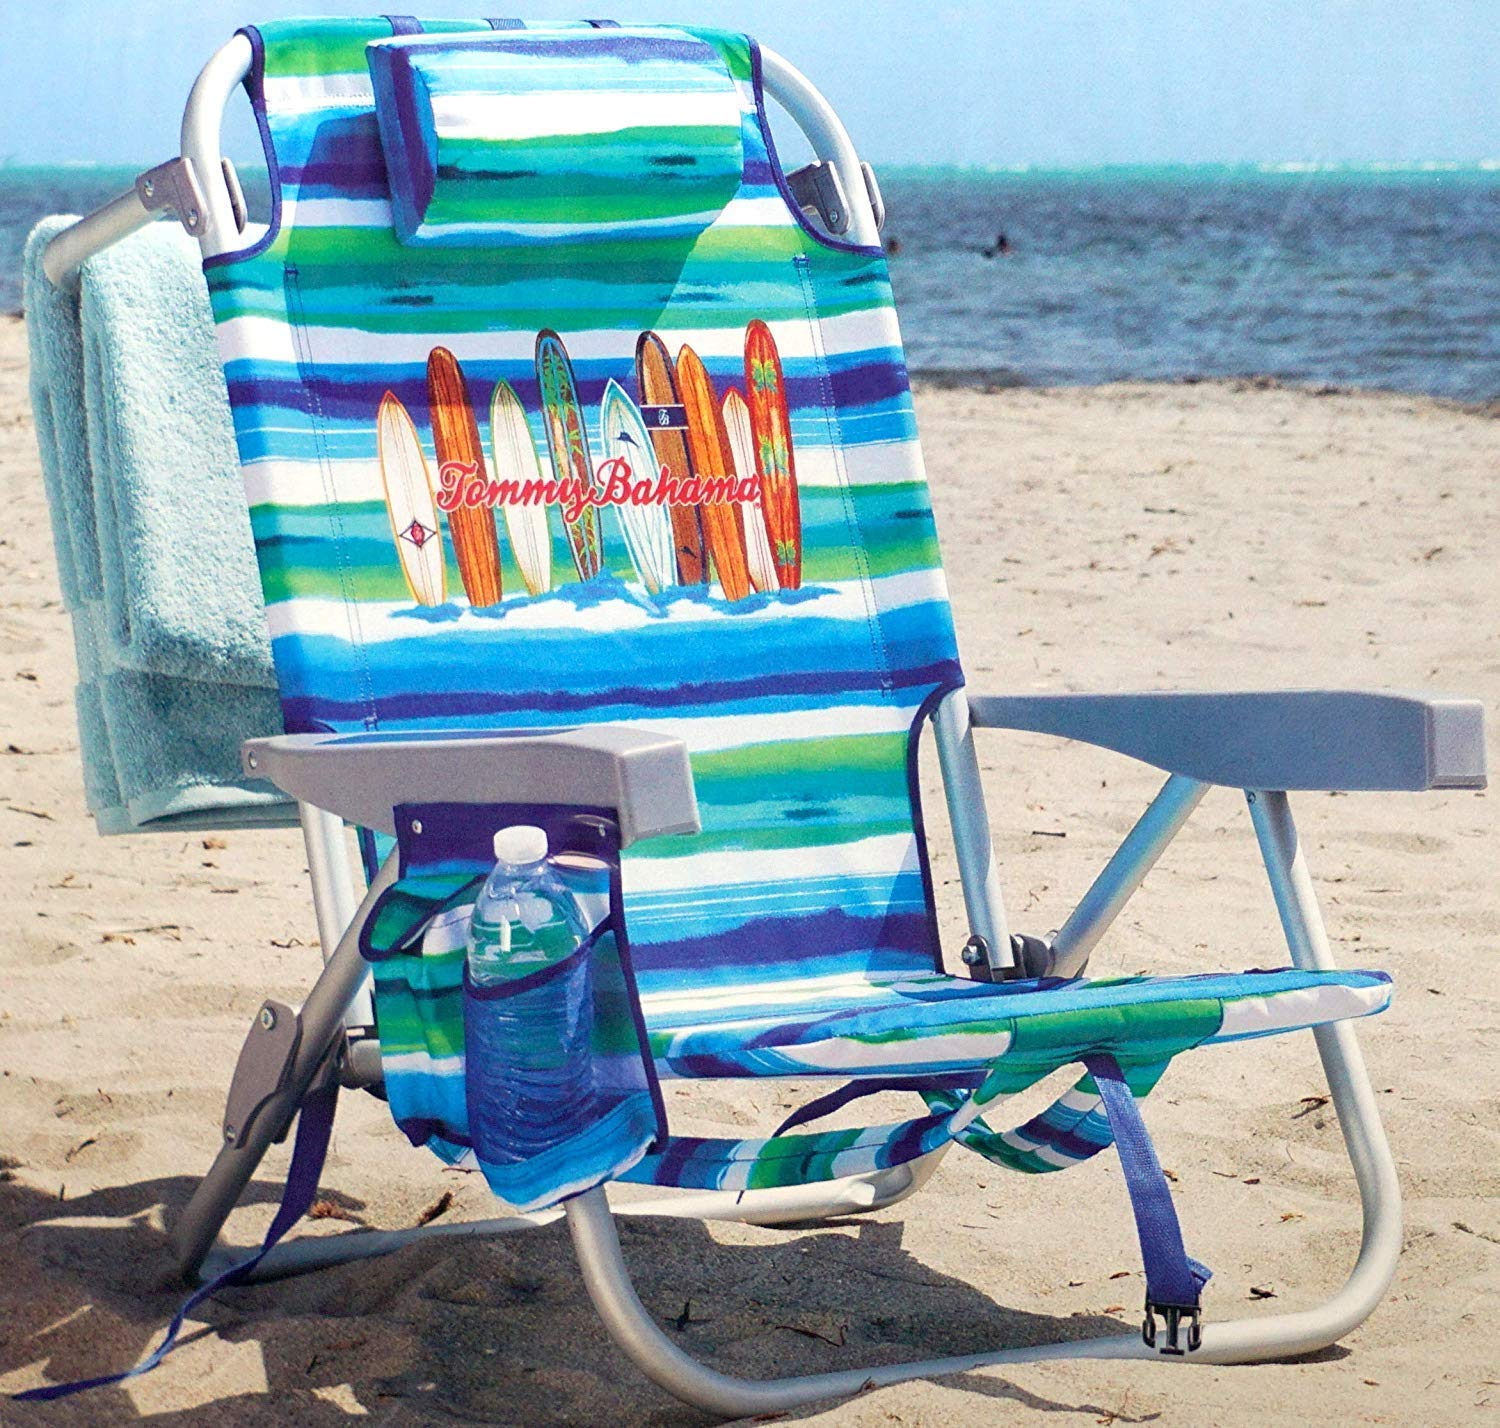 Tommy Bahama Backpack Beach Chair Lounger w Storage Pockets and Pillow- Surfboards with Blue, White Aqua Stripes by TOMMY B